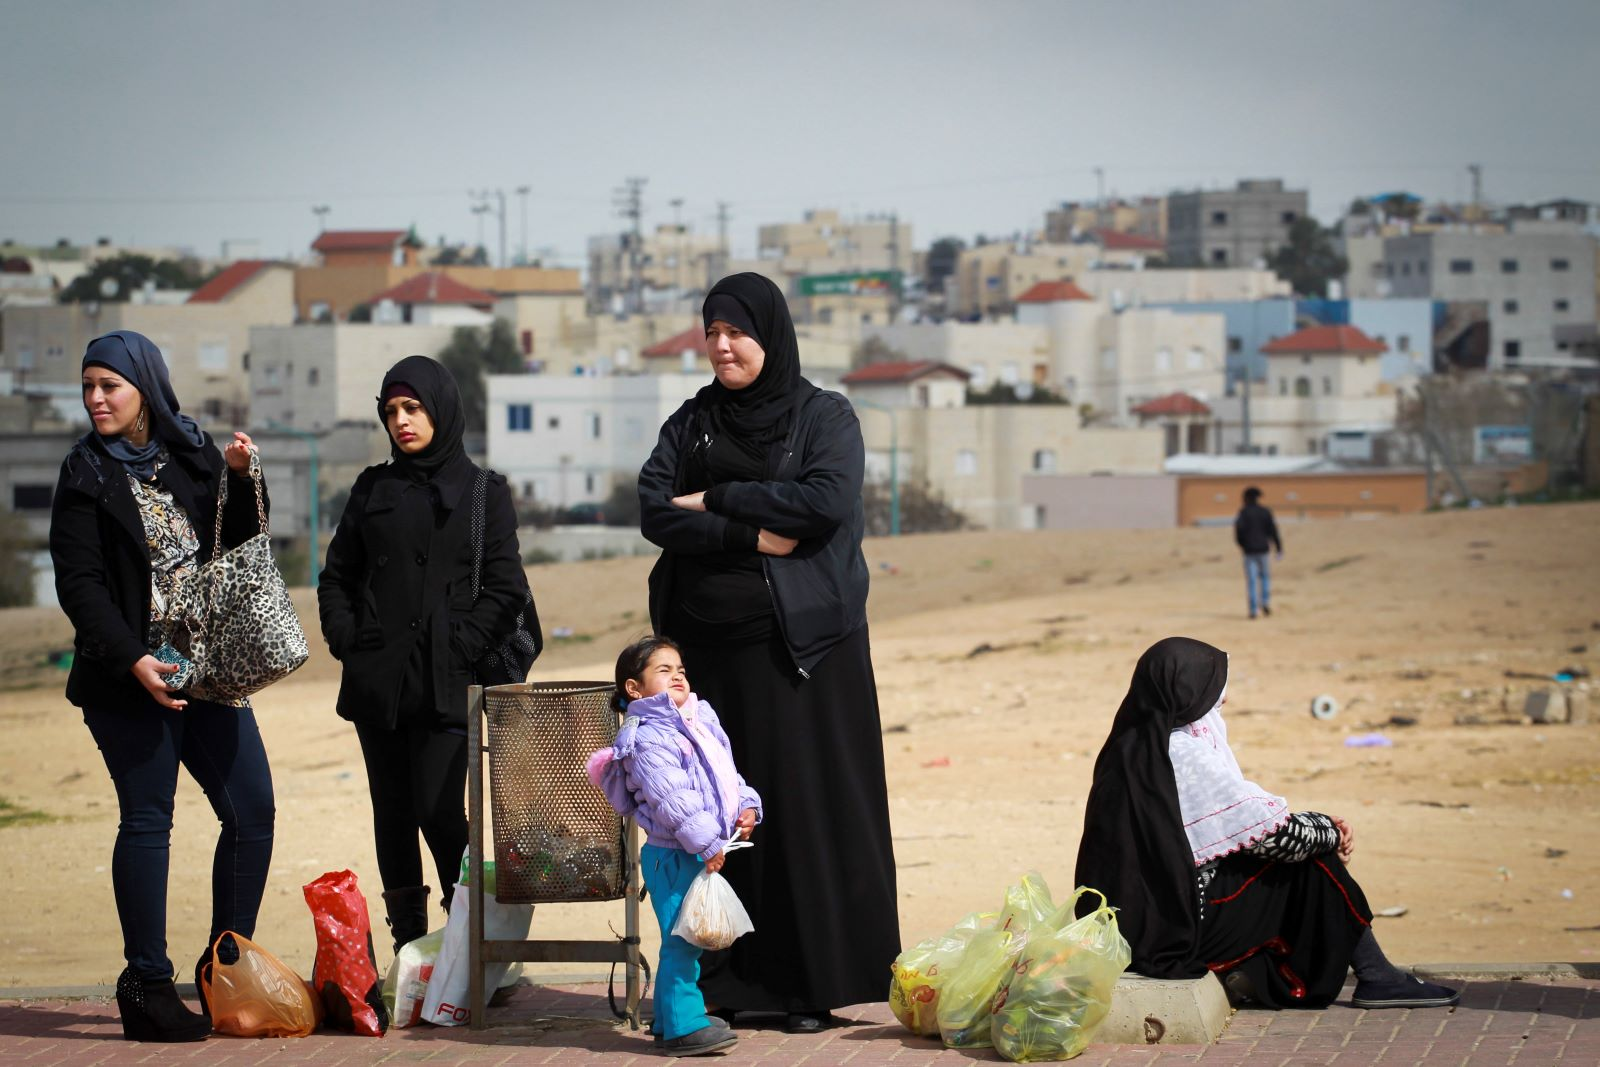 Bedouin women wait for a bus in the Bedouin city of Rahat in southern Israel, February 16, 2014. (Hadas Parush/Flash90)